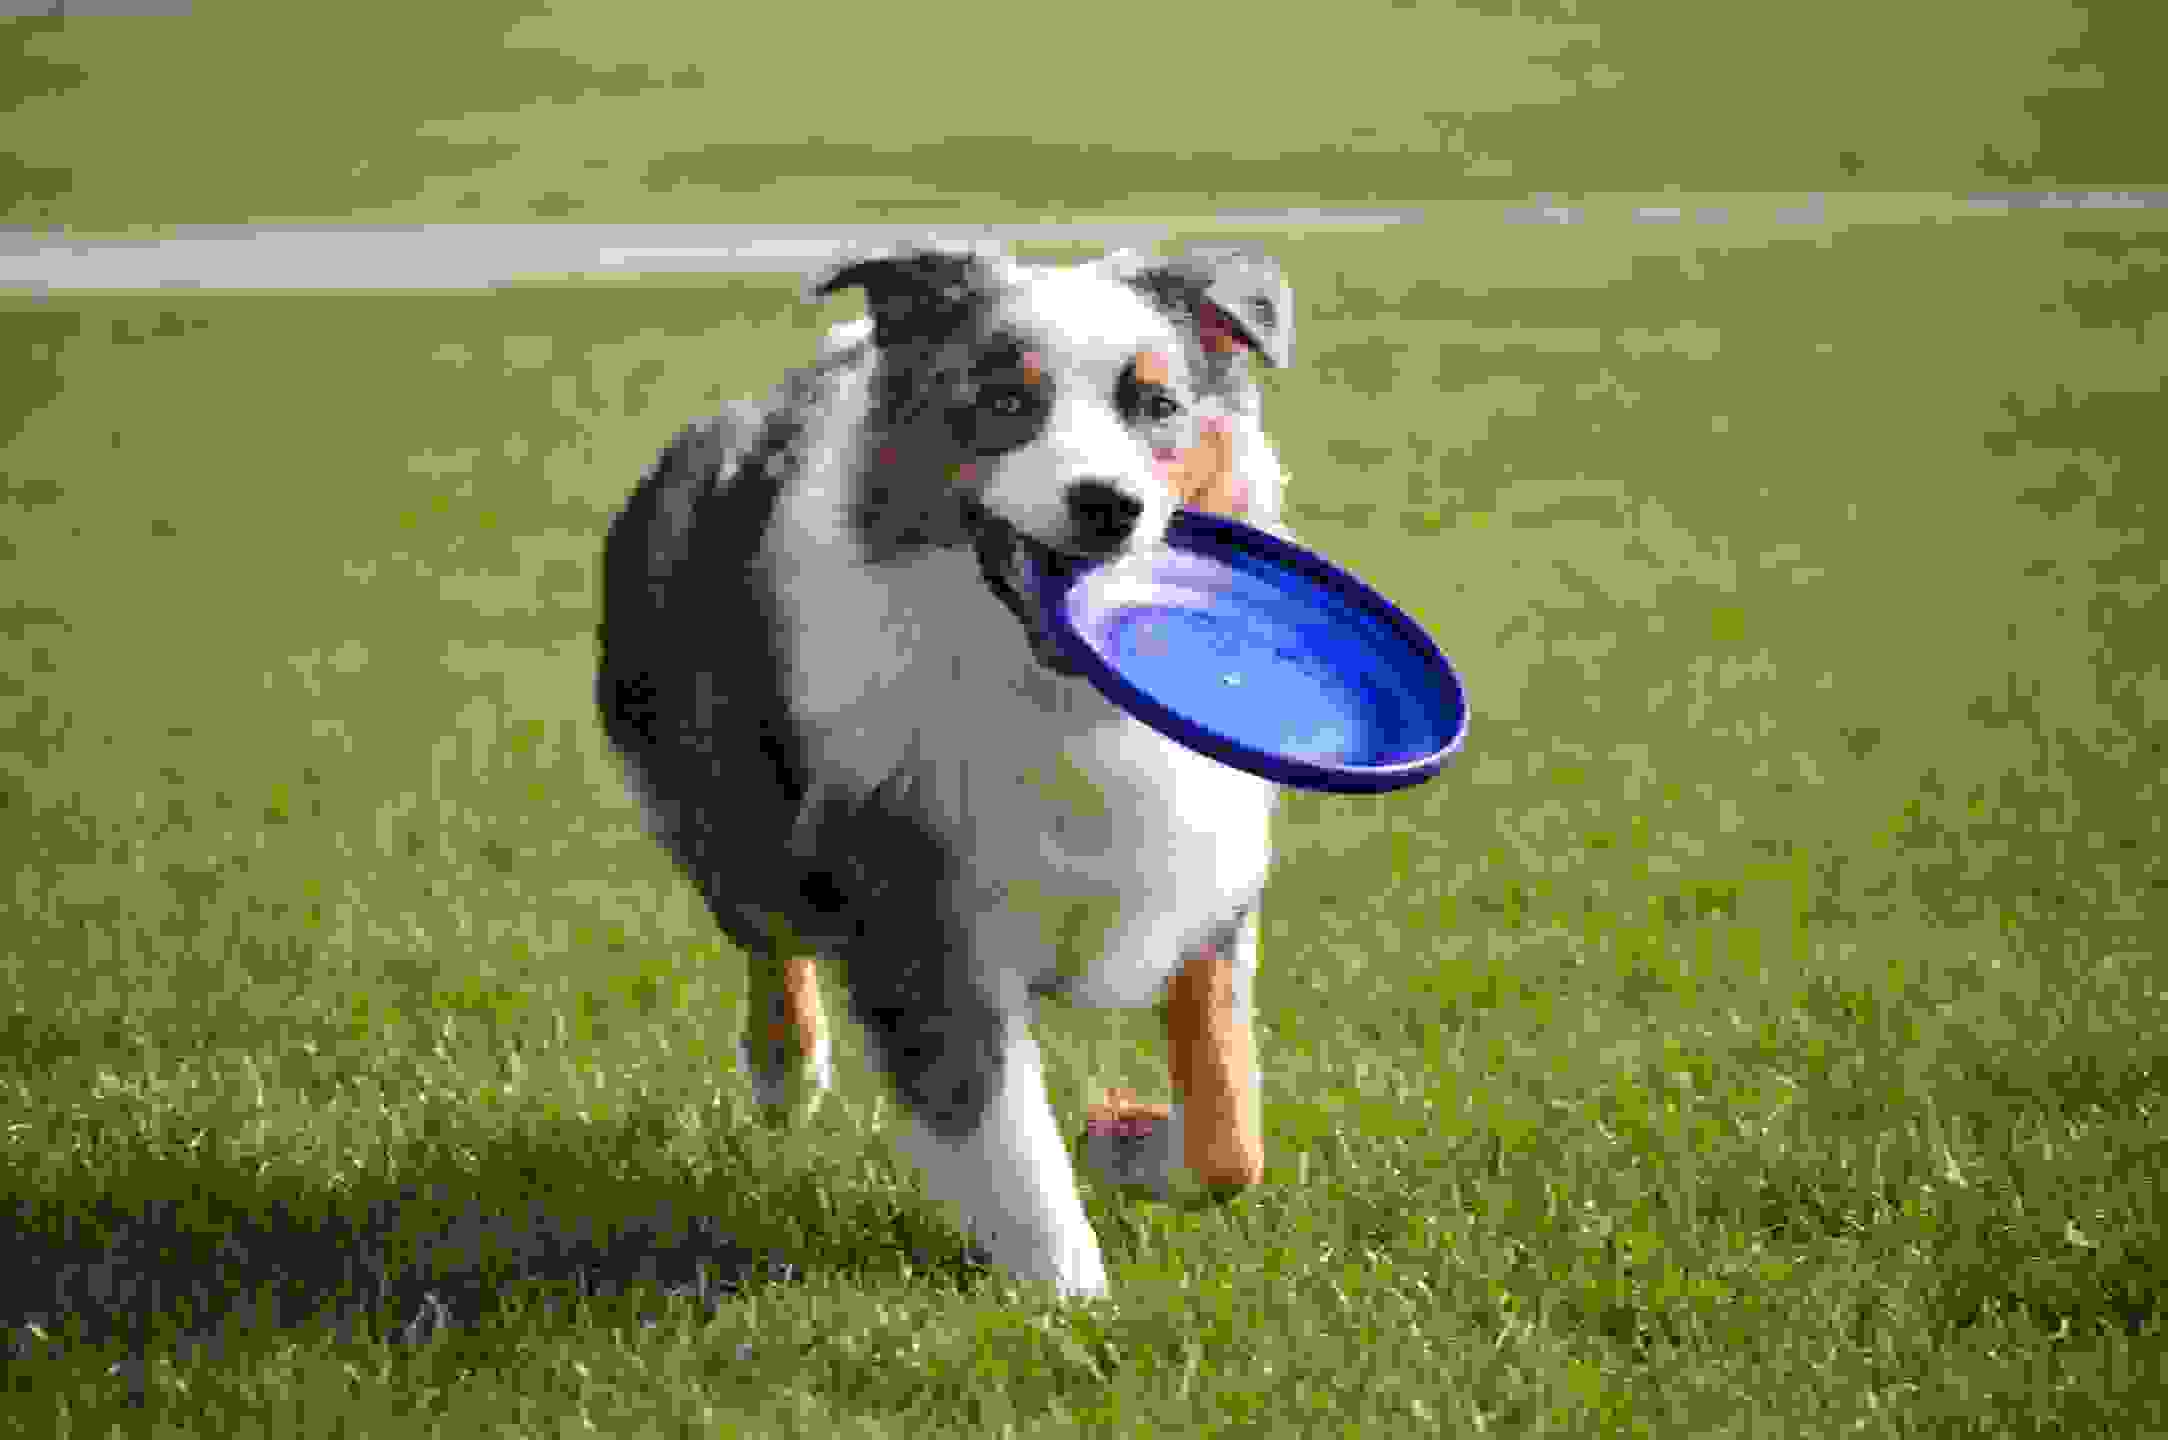 happy dog with frisbee running in a grassy field